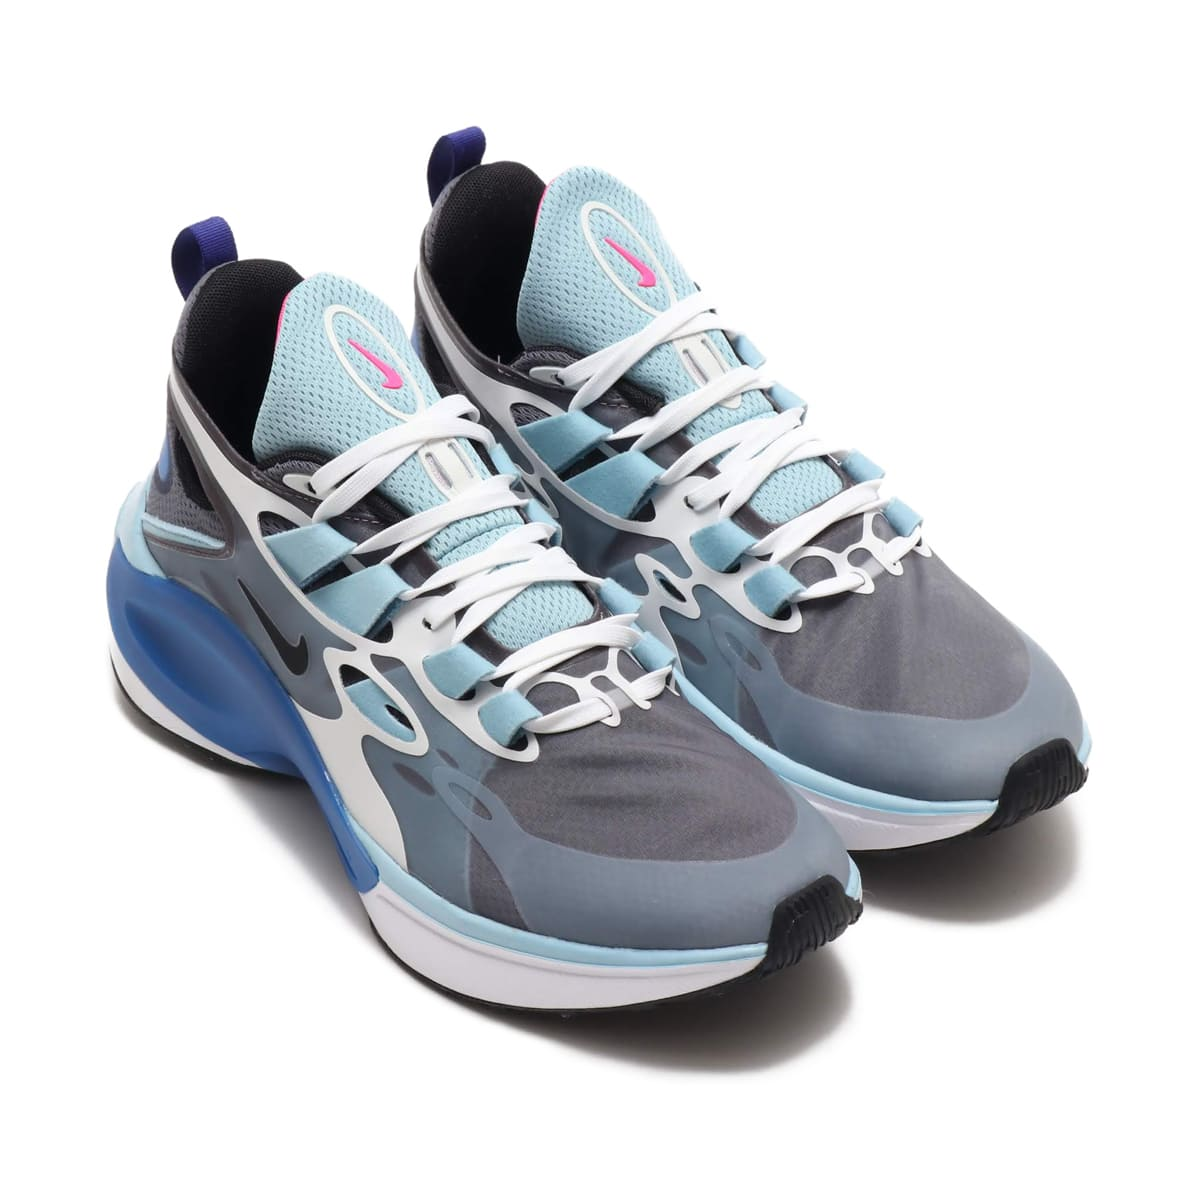 NIKE SIGNAL D/MS/X DARK GREY/WHITE-OCEAN CUBE-SUMMIT WHITE 19FA-S_photo_large